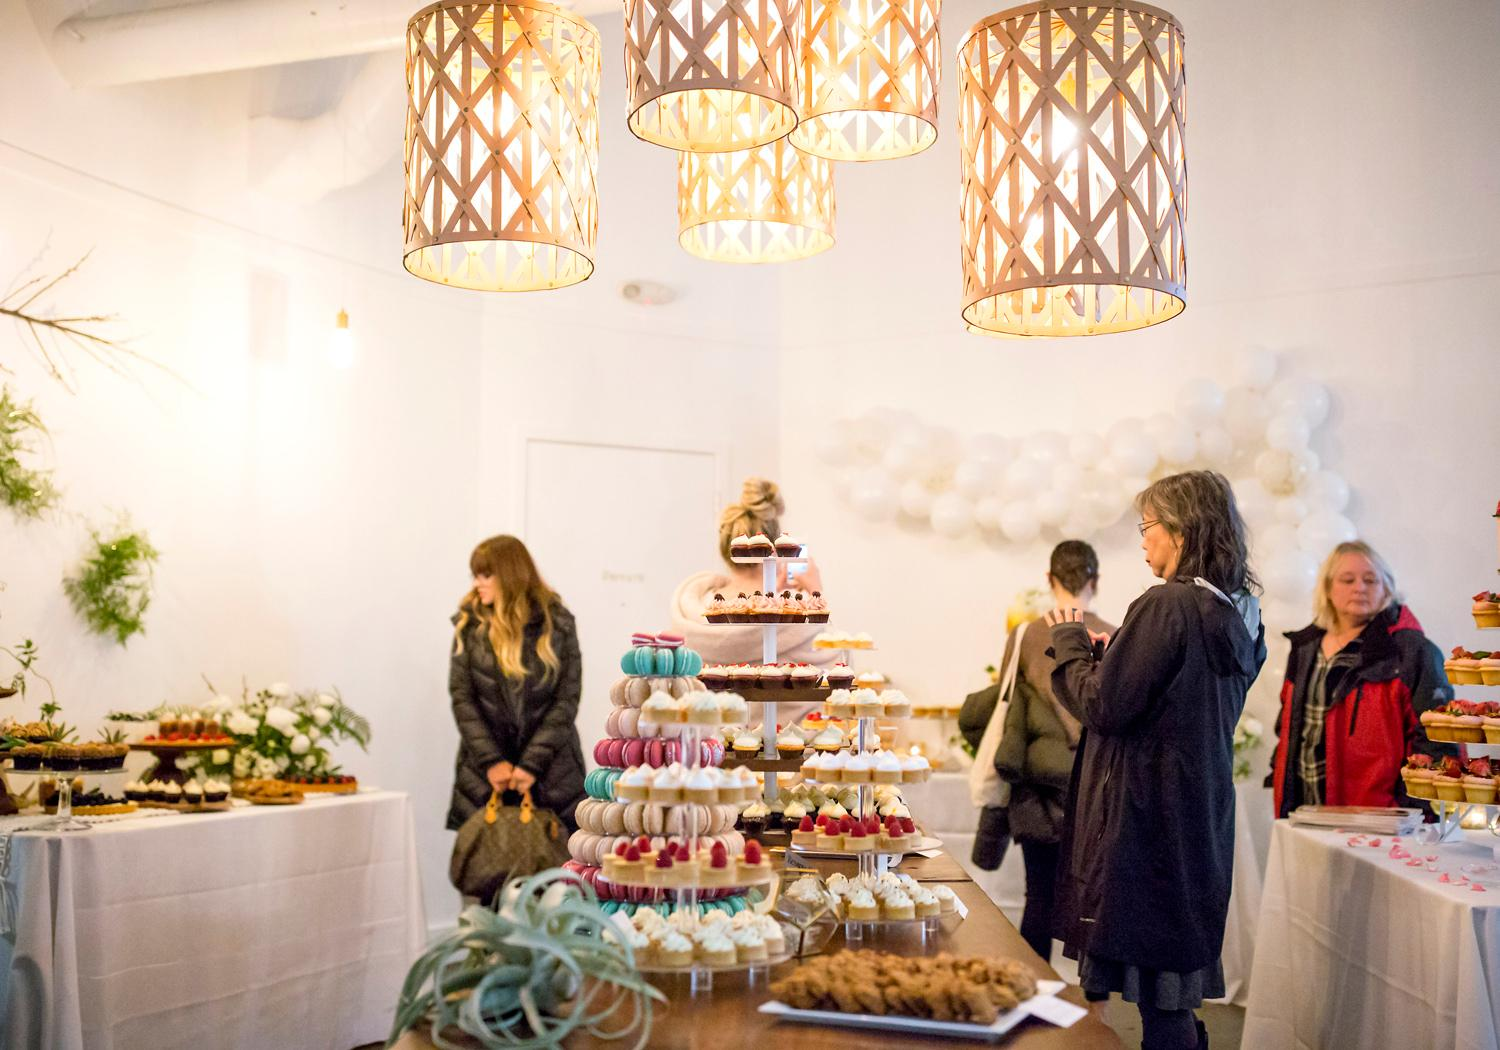 Towers of baked macarons, cupcakes, and cheesecakes are on display for the VIP Wedding Tasting at Trophy Cupcakes at the Bravern. Guests of the tasting got to try the delectable cupcakes, 6-inch cakes, macarons, meringues, and other goodies on display while sipping champagne. (Sy Bean / Seattle Refined)<p></p>